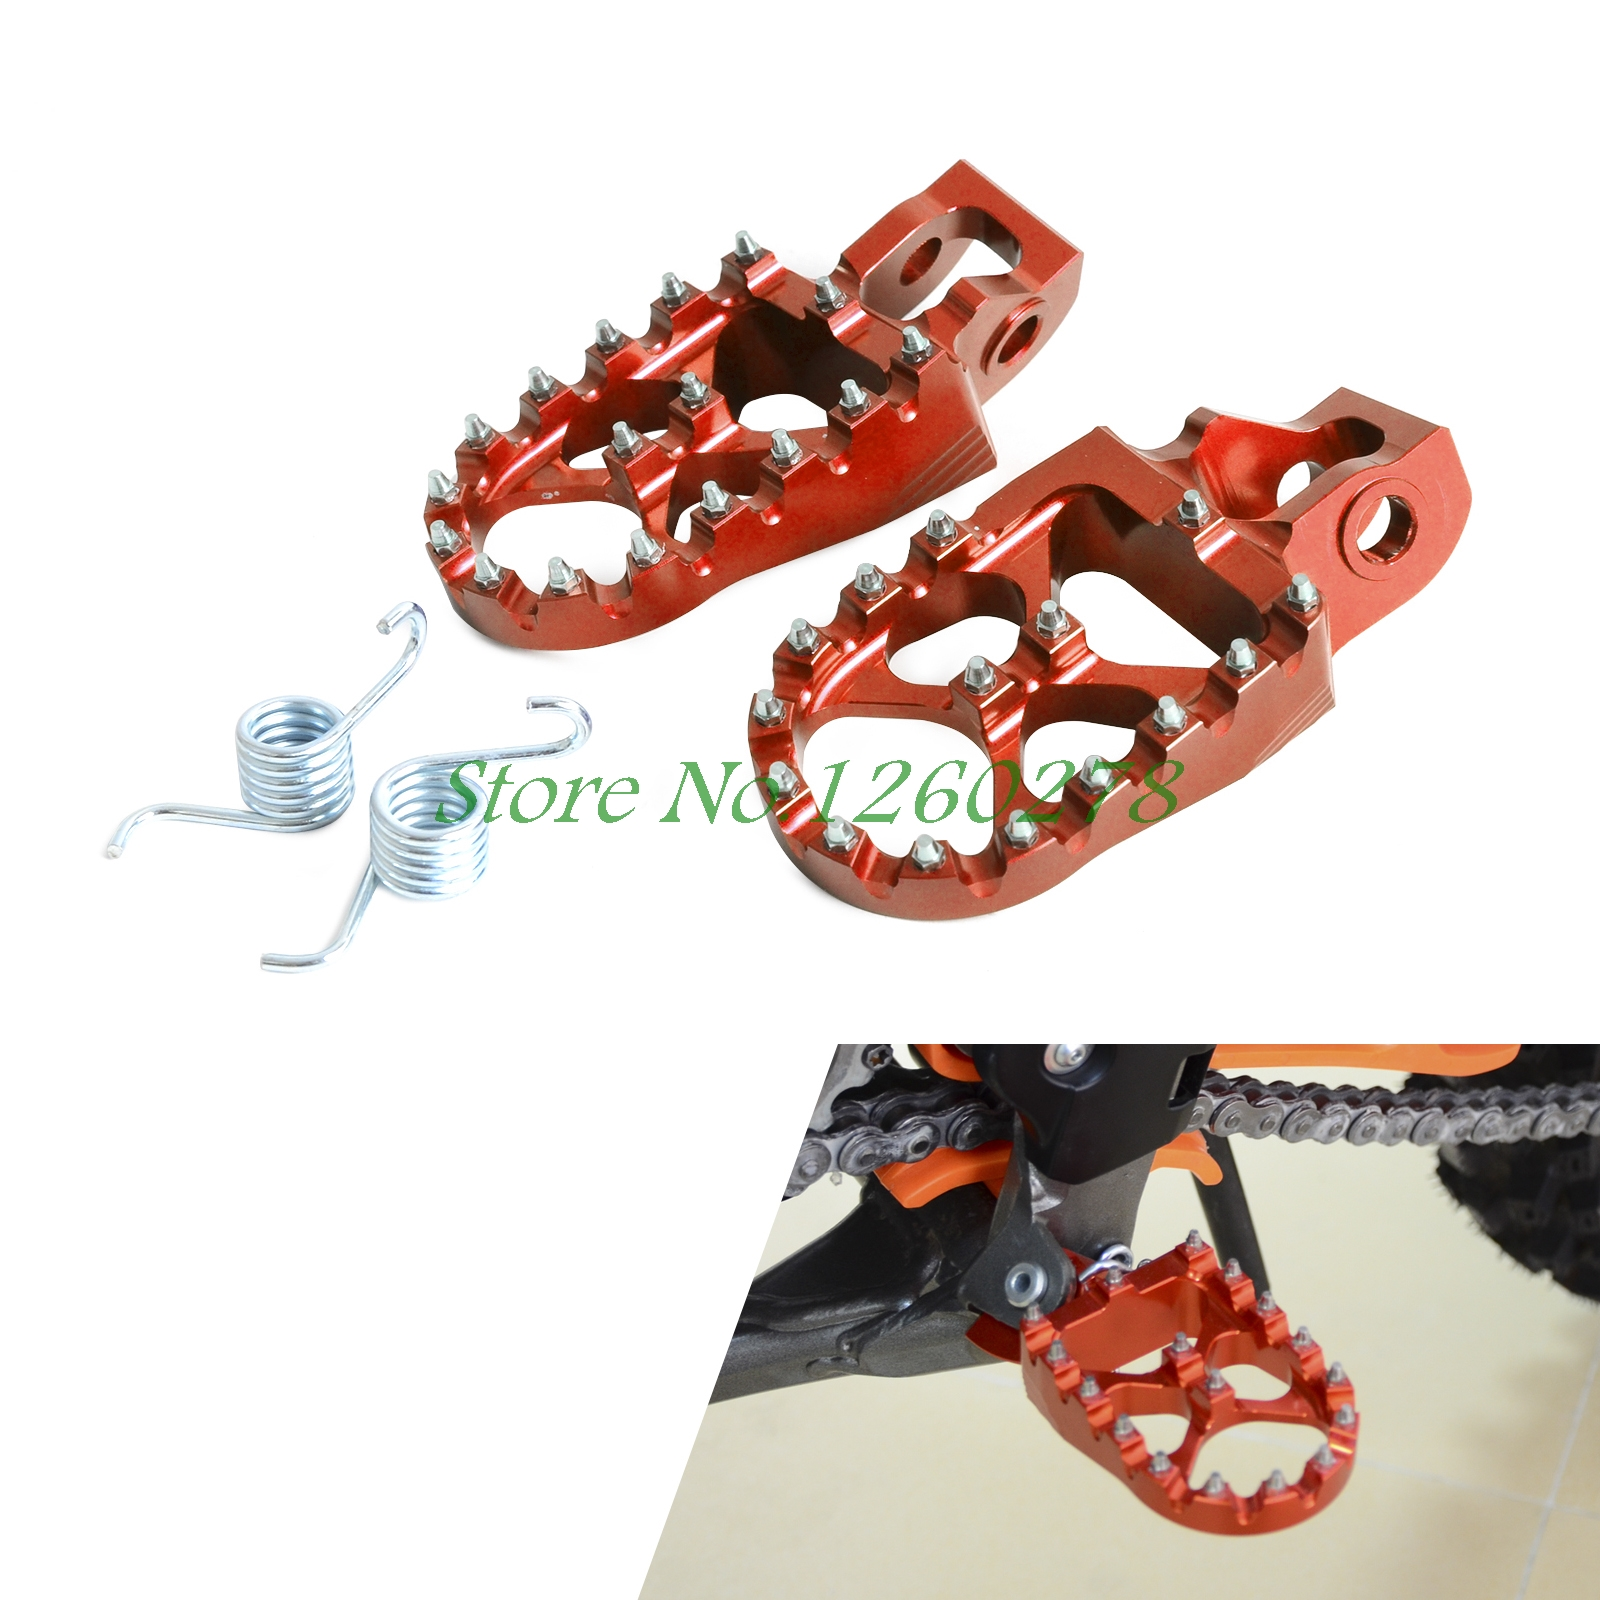 NICECNC 57mm Wide CNC Foot Pegs Footrests For KTM 85 125 200 250 300 350 400 450 530 SX SXF EXC EXCF XC XCF XCW 2017 2018 2019